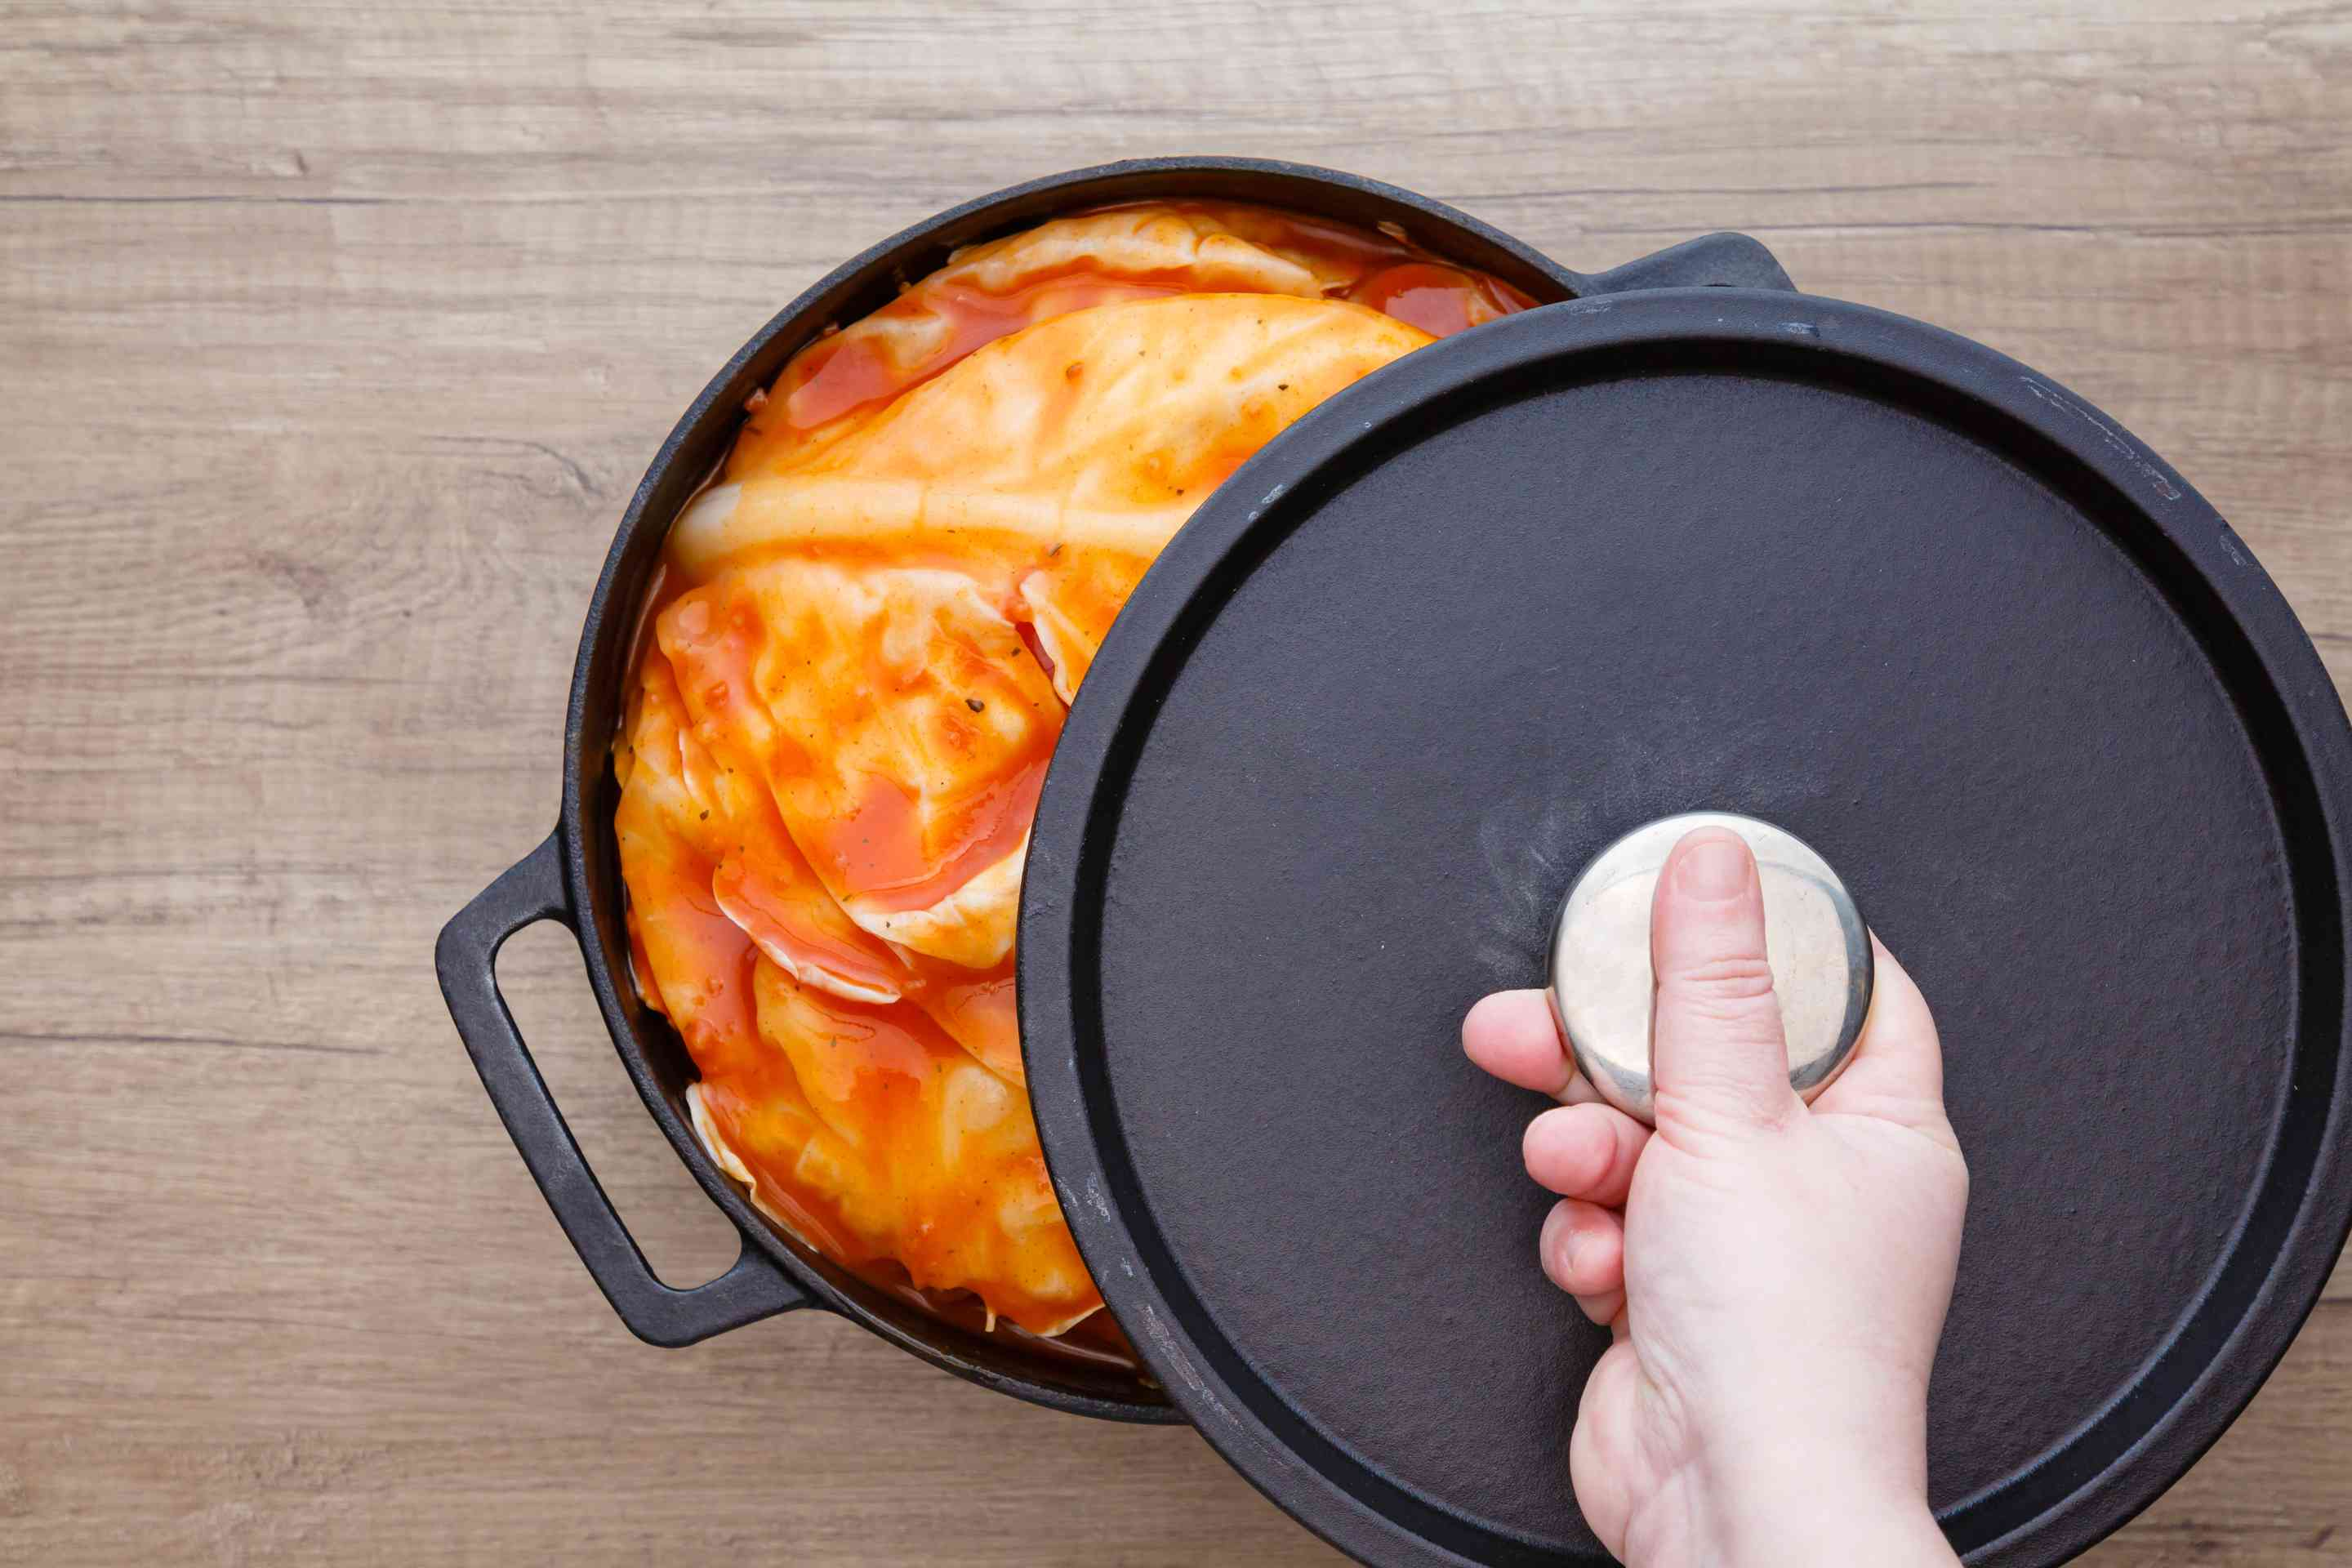 Covering the cabbage rolls with a lid